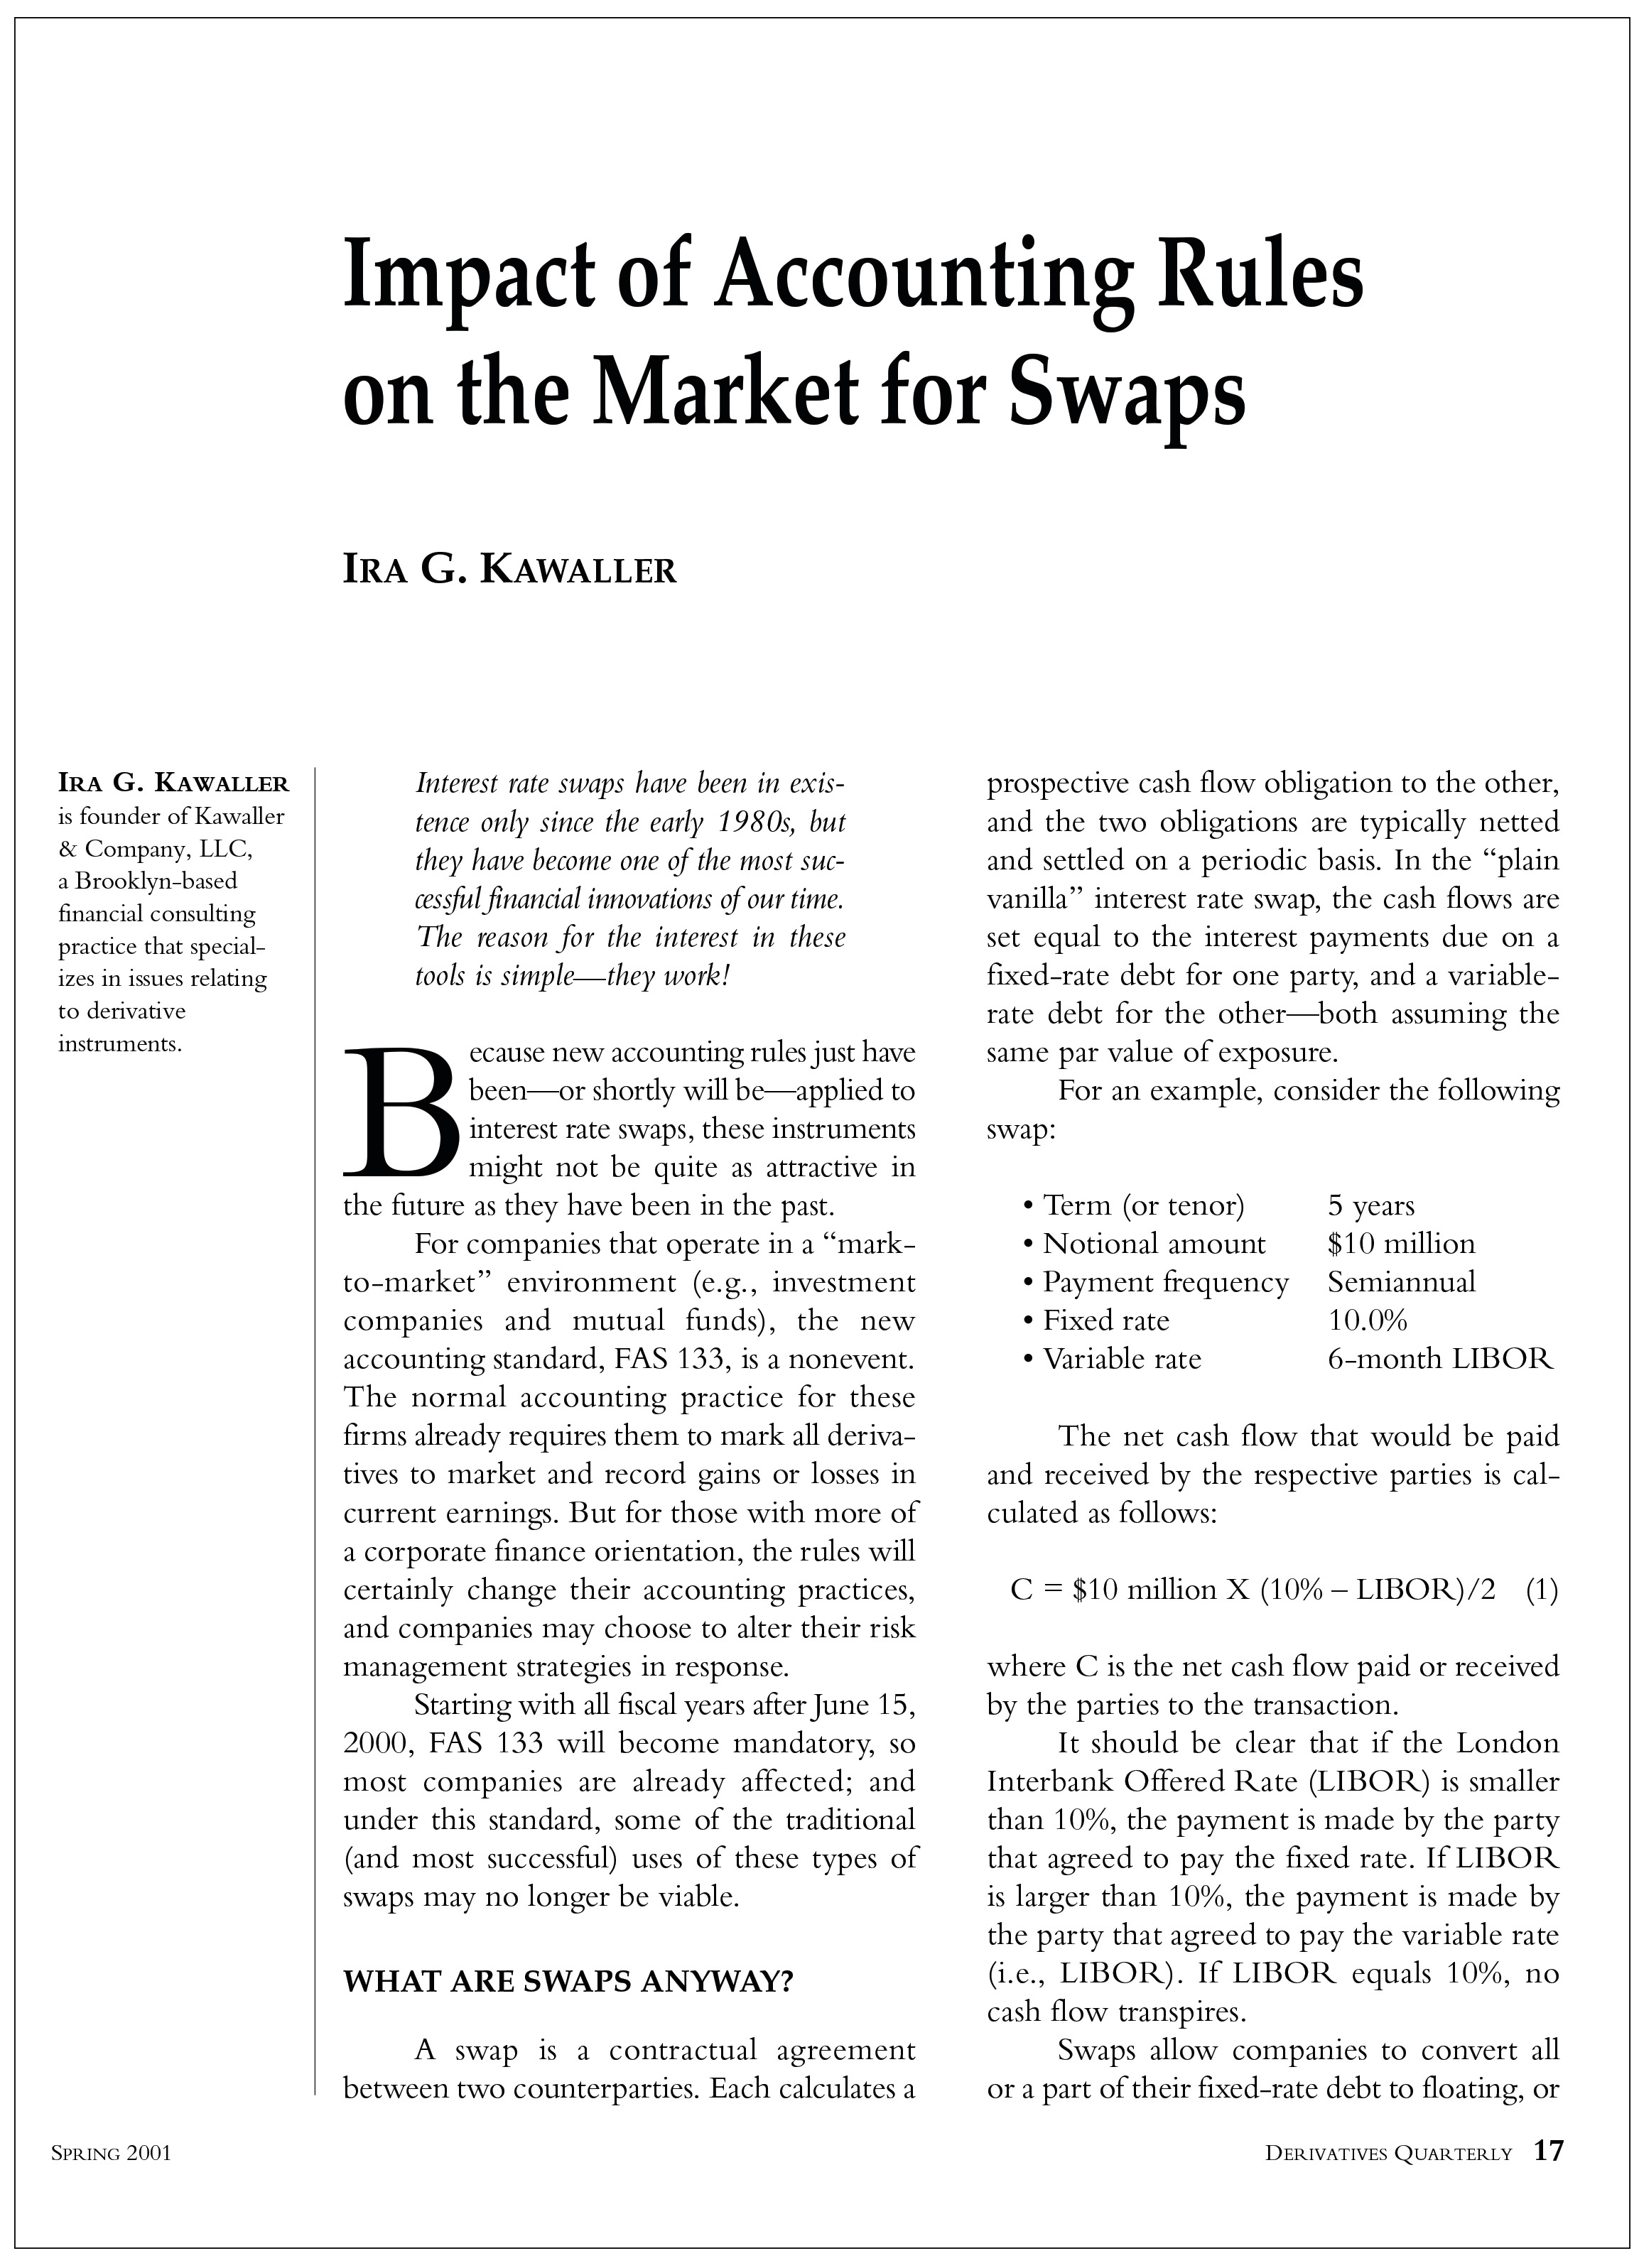 Impact Of Accounting Rules On The Market For Swaps Hedge